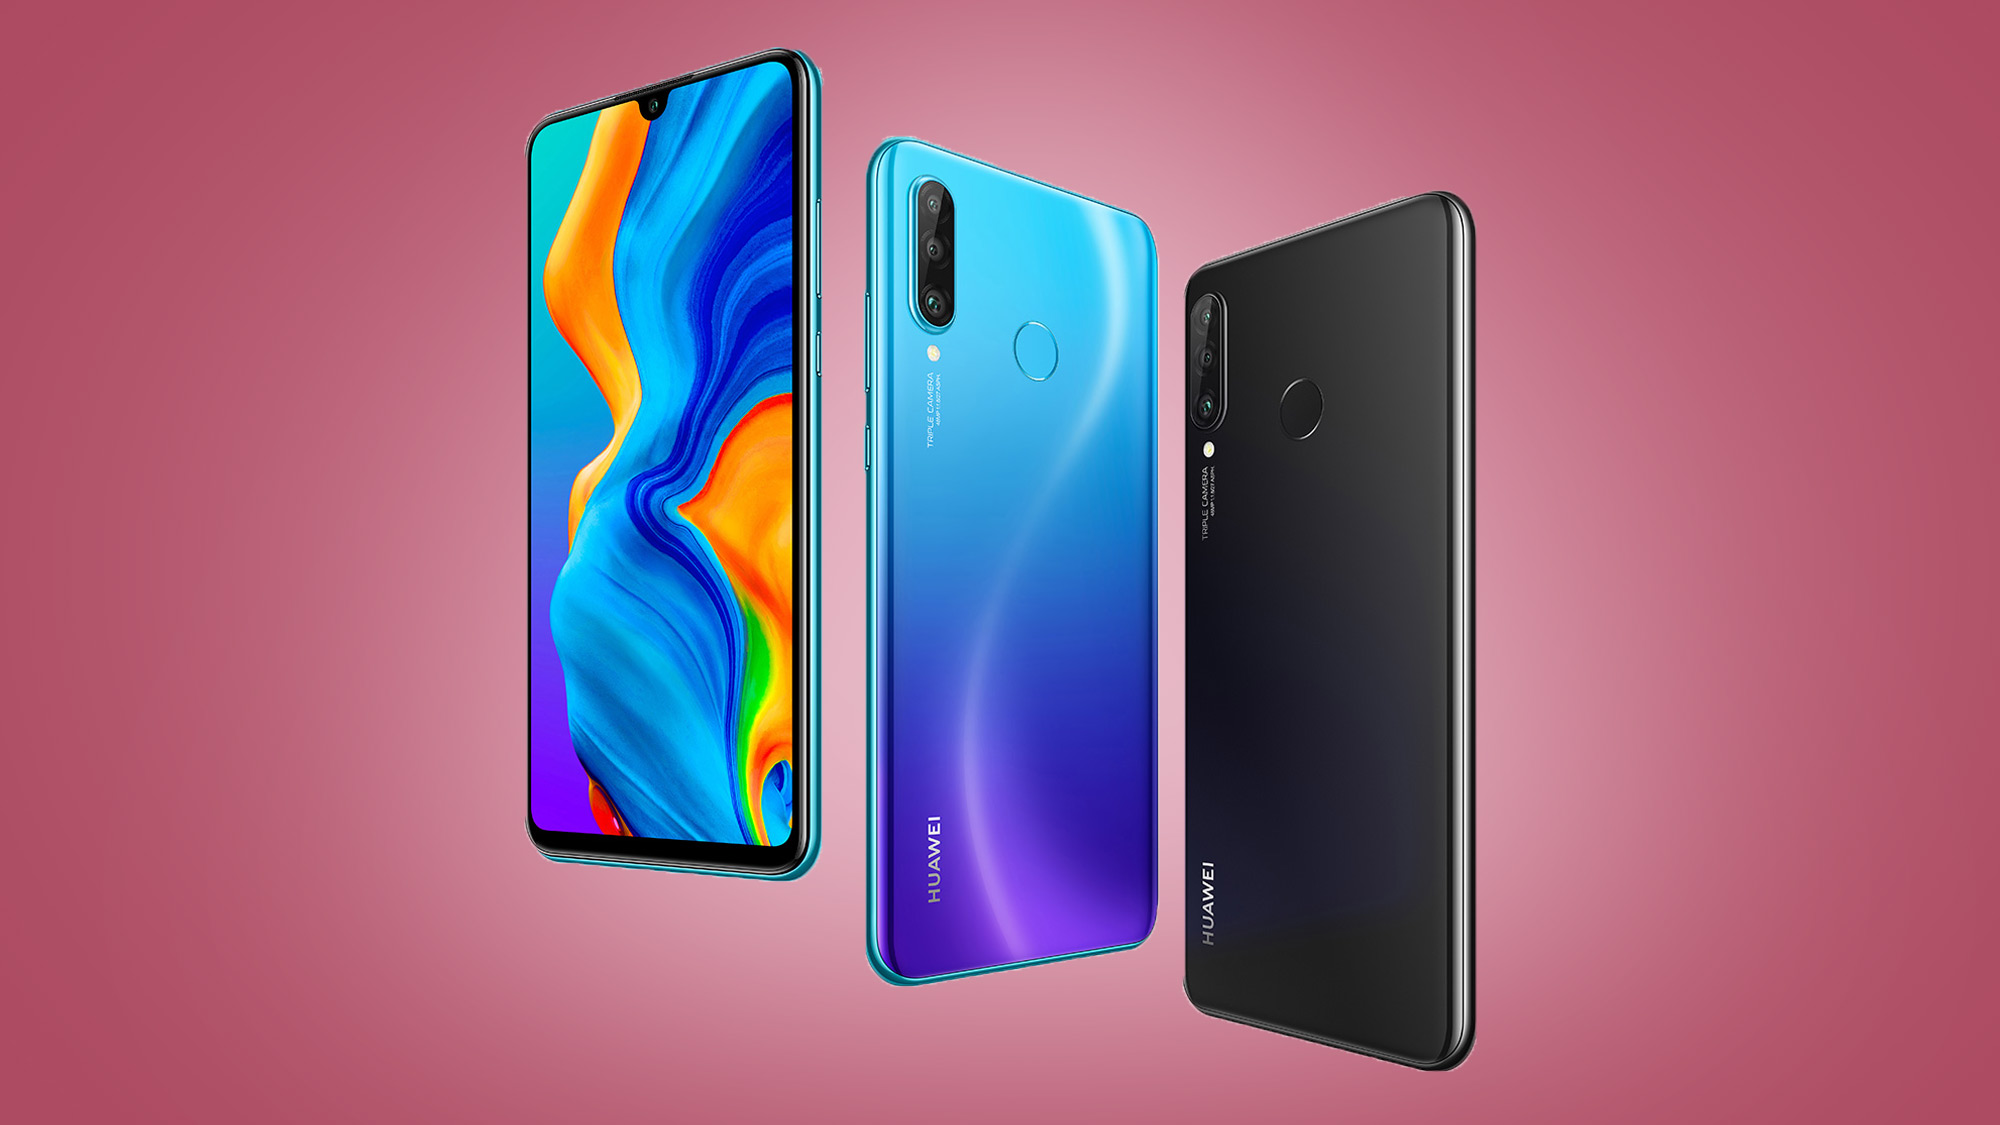 Score a sub-£200 Huawei phone deal with this SIM-free P30